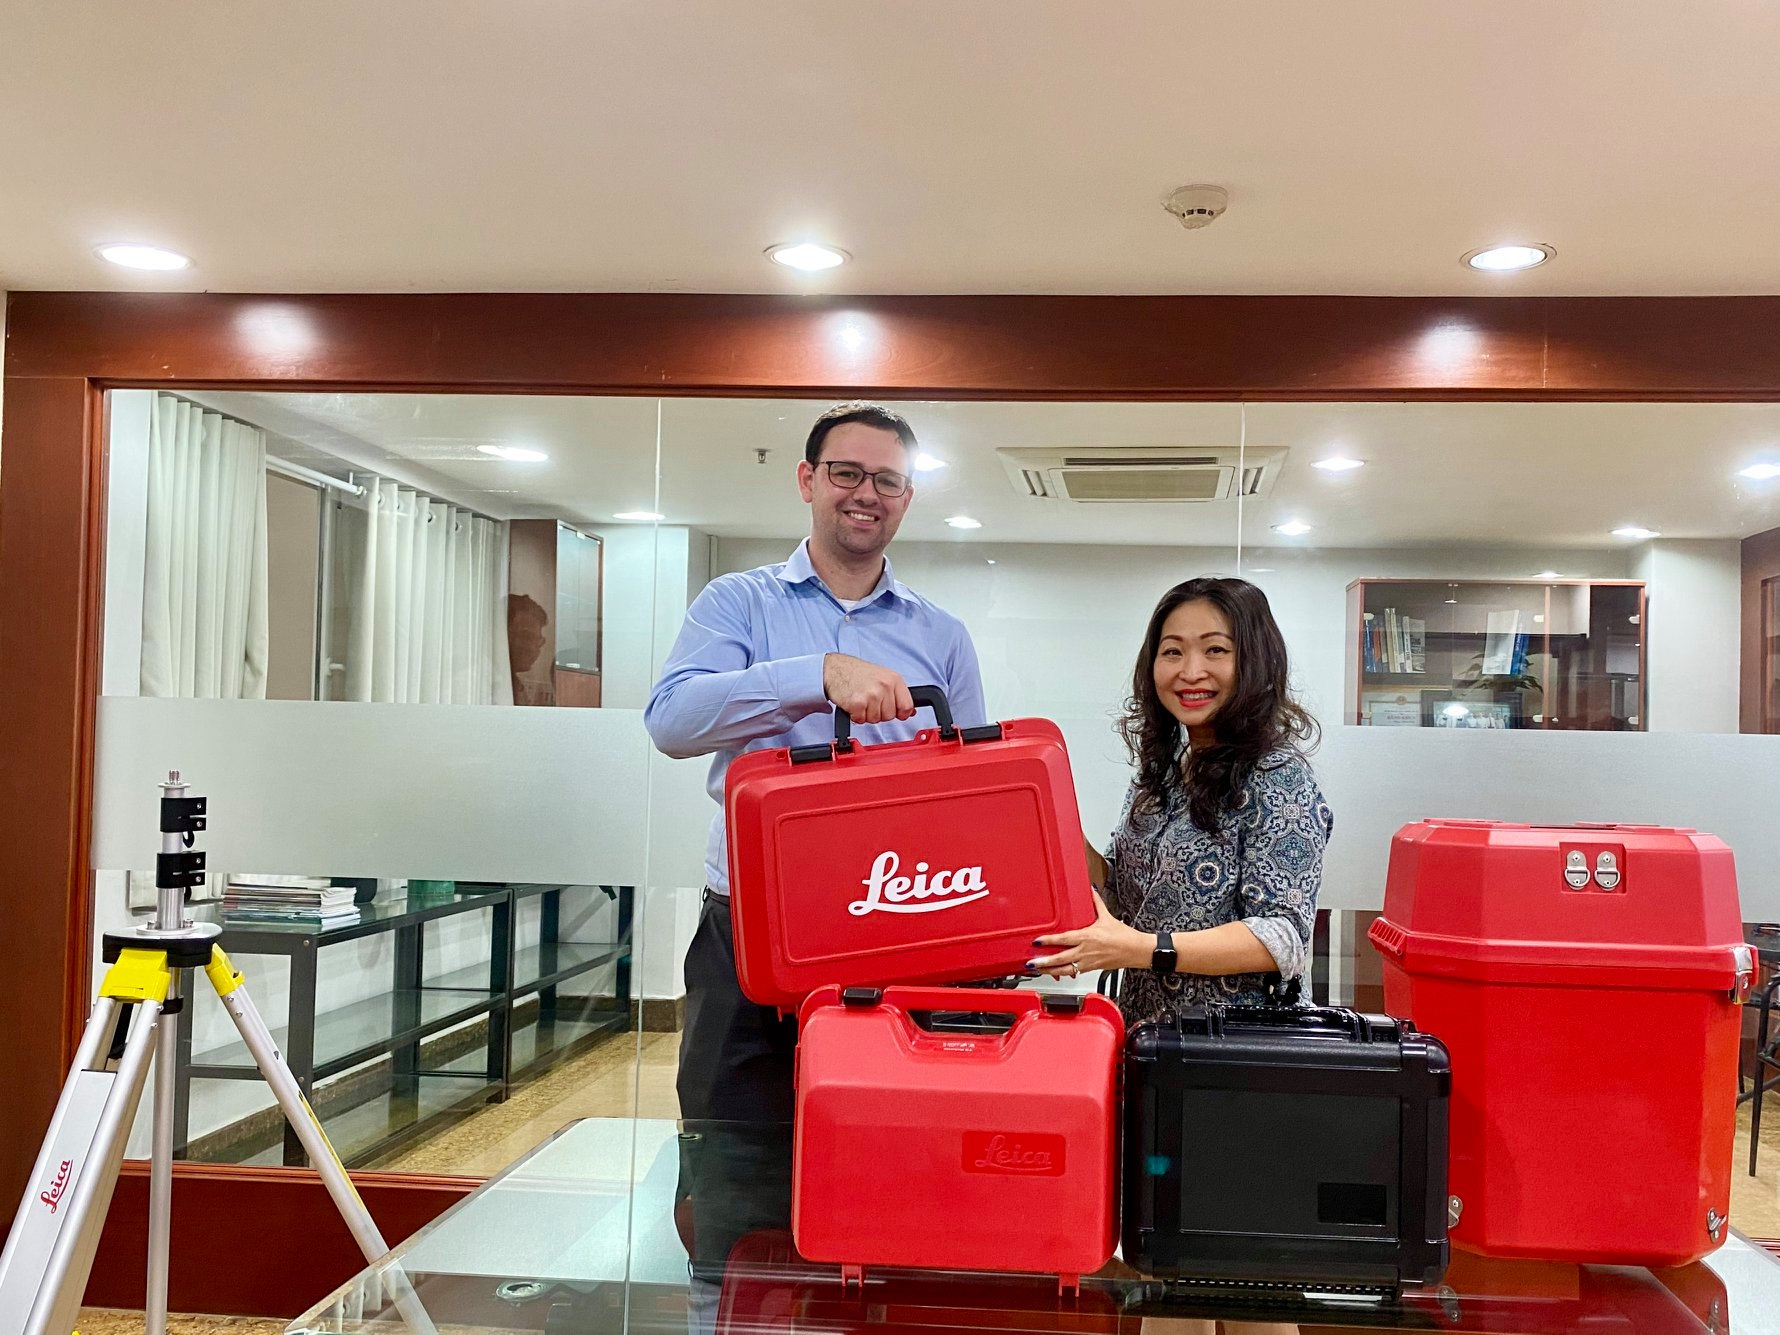 Portcoast recieve latest equipments from Leica